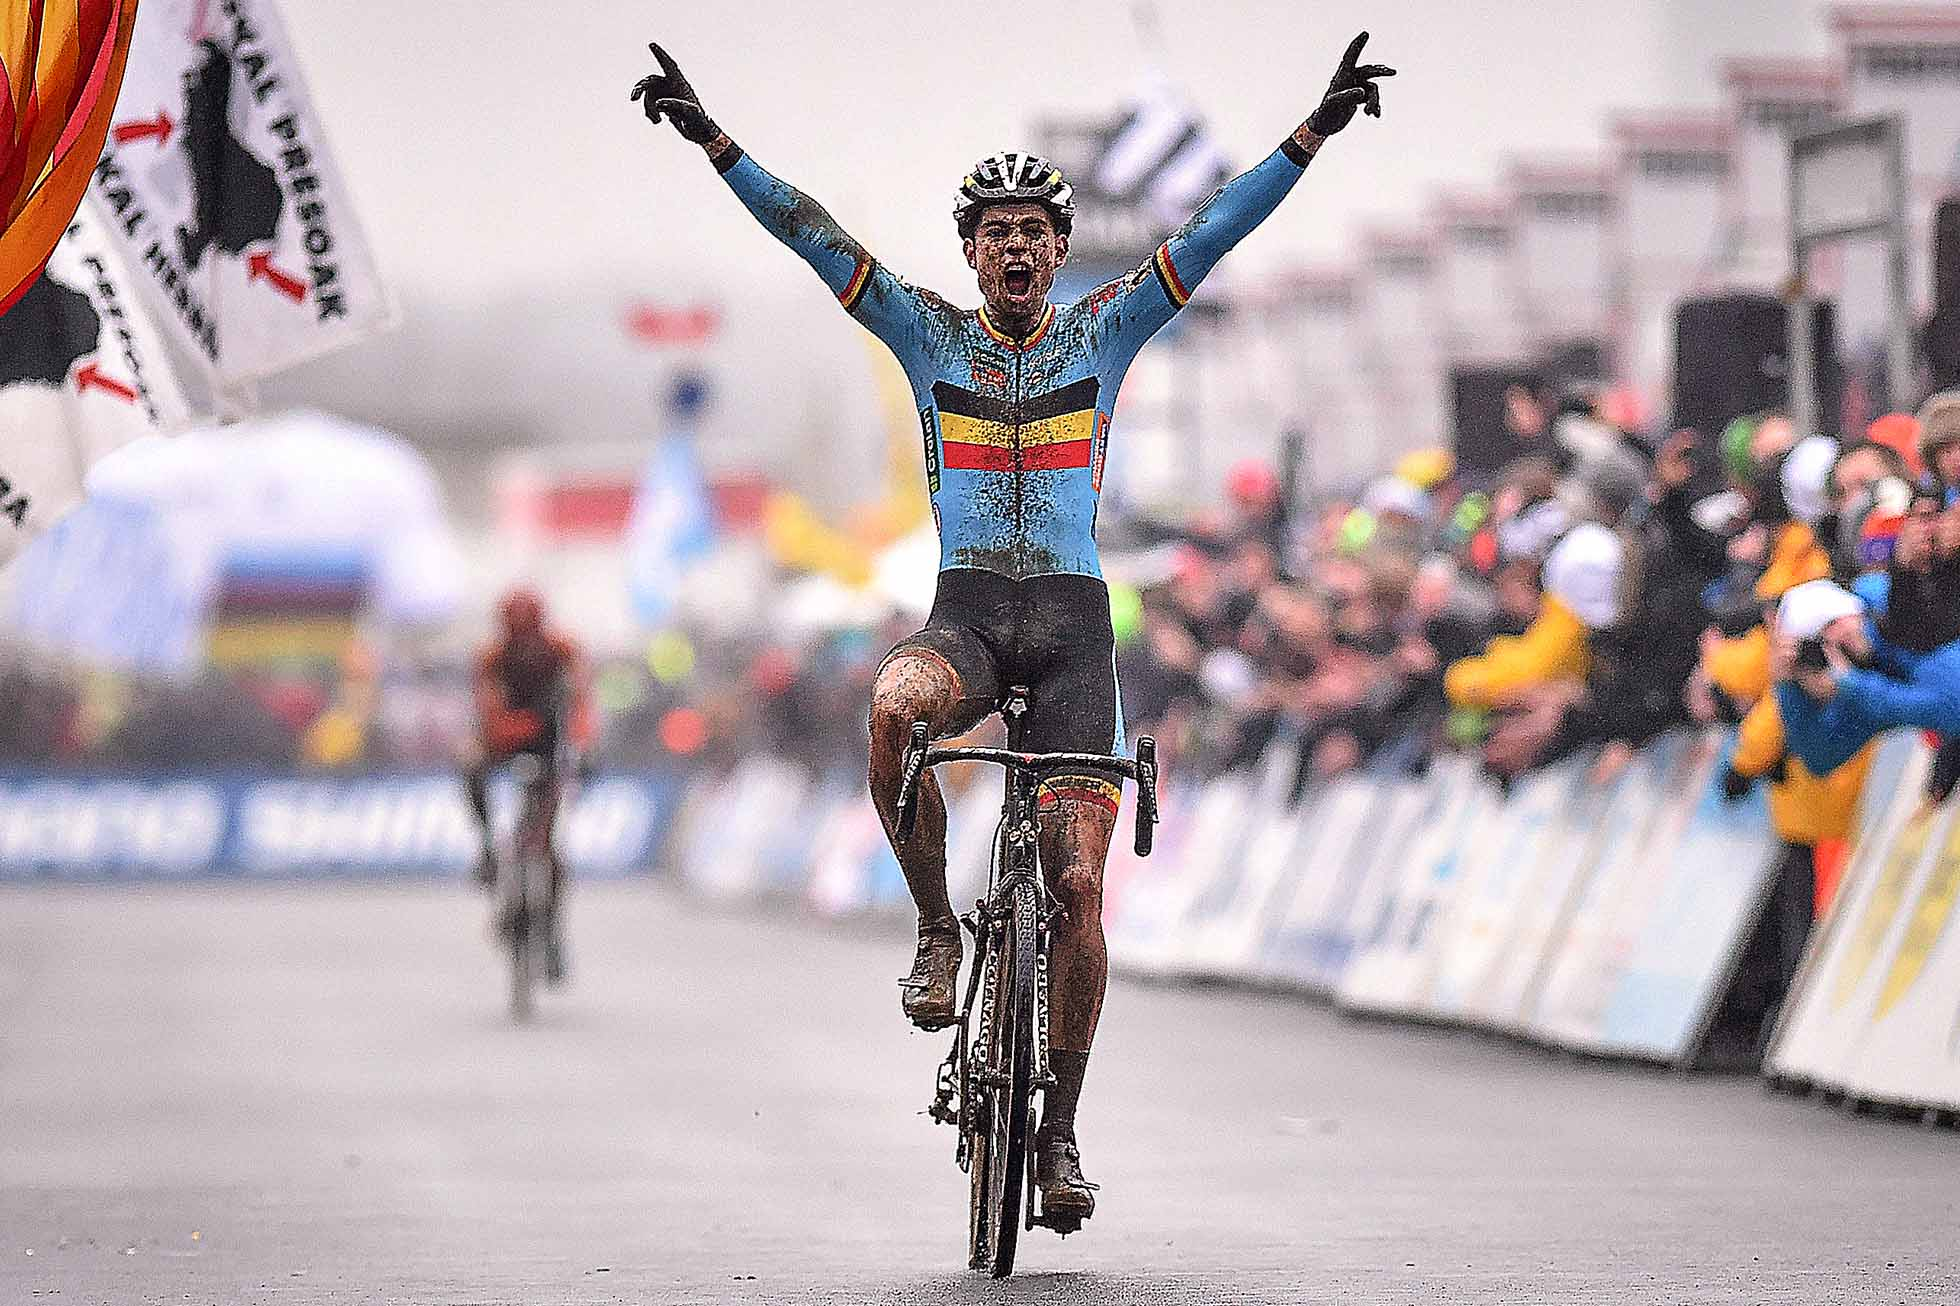 Cyclocross: World Championships 2016 / Men Elite / Arrival Wout van Aert (Bel) Celebration Joie Vreugde / Wereldkampioenschap / (c) Tim De Waele (Photo by Tim de Waele/Corbis via Getty Images)